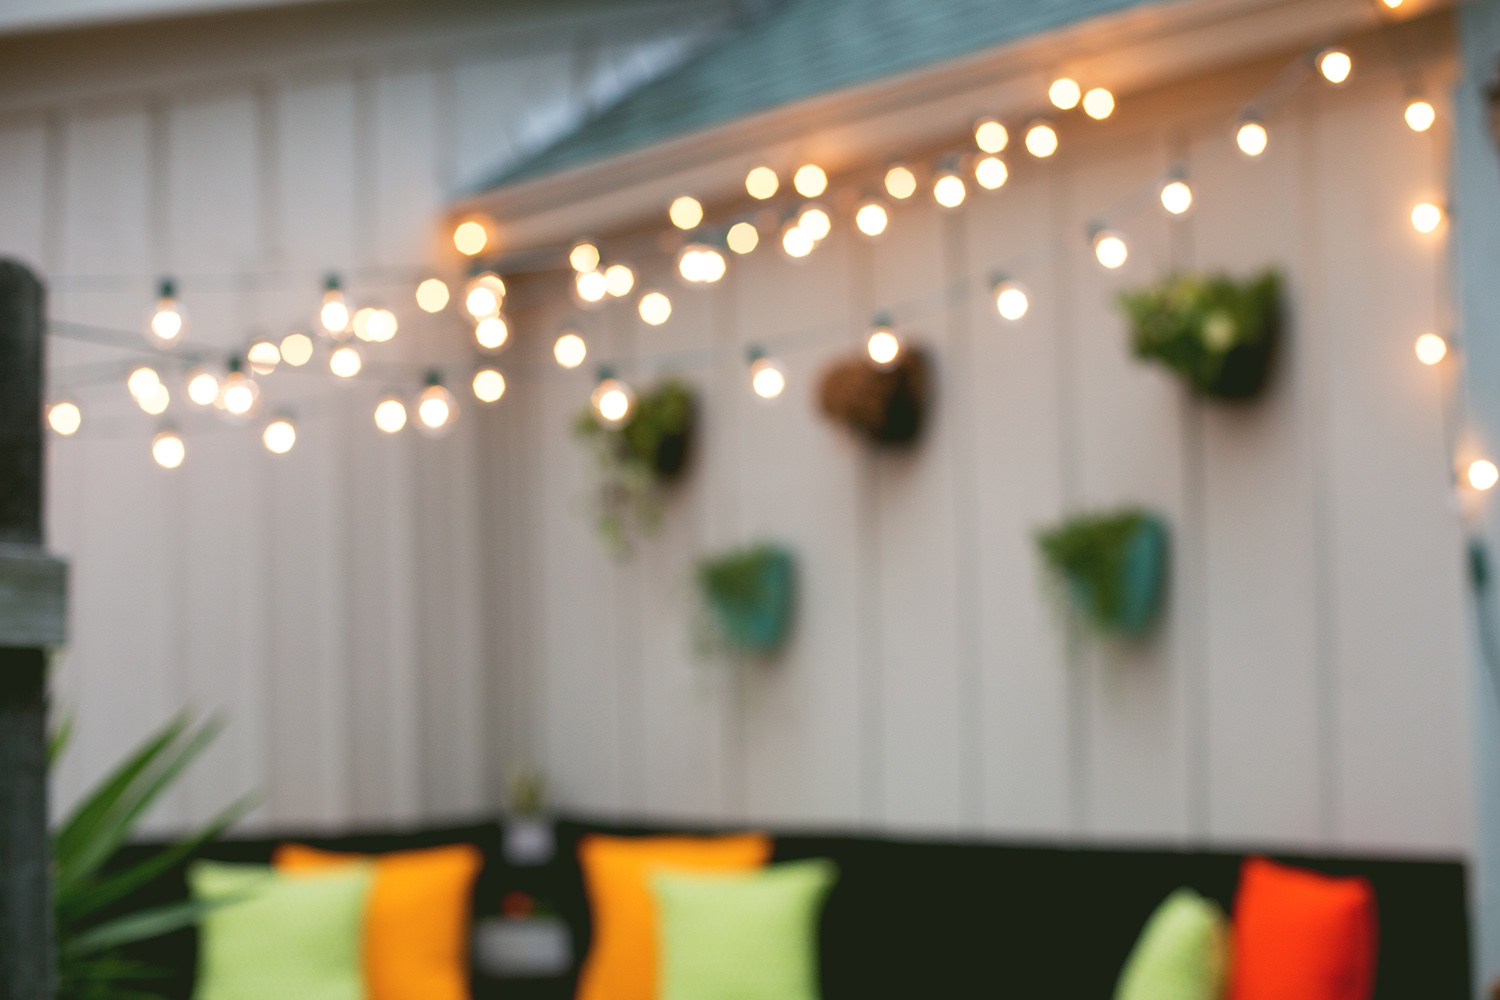 Abeautifulmess party lights (click for more details)